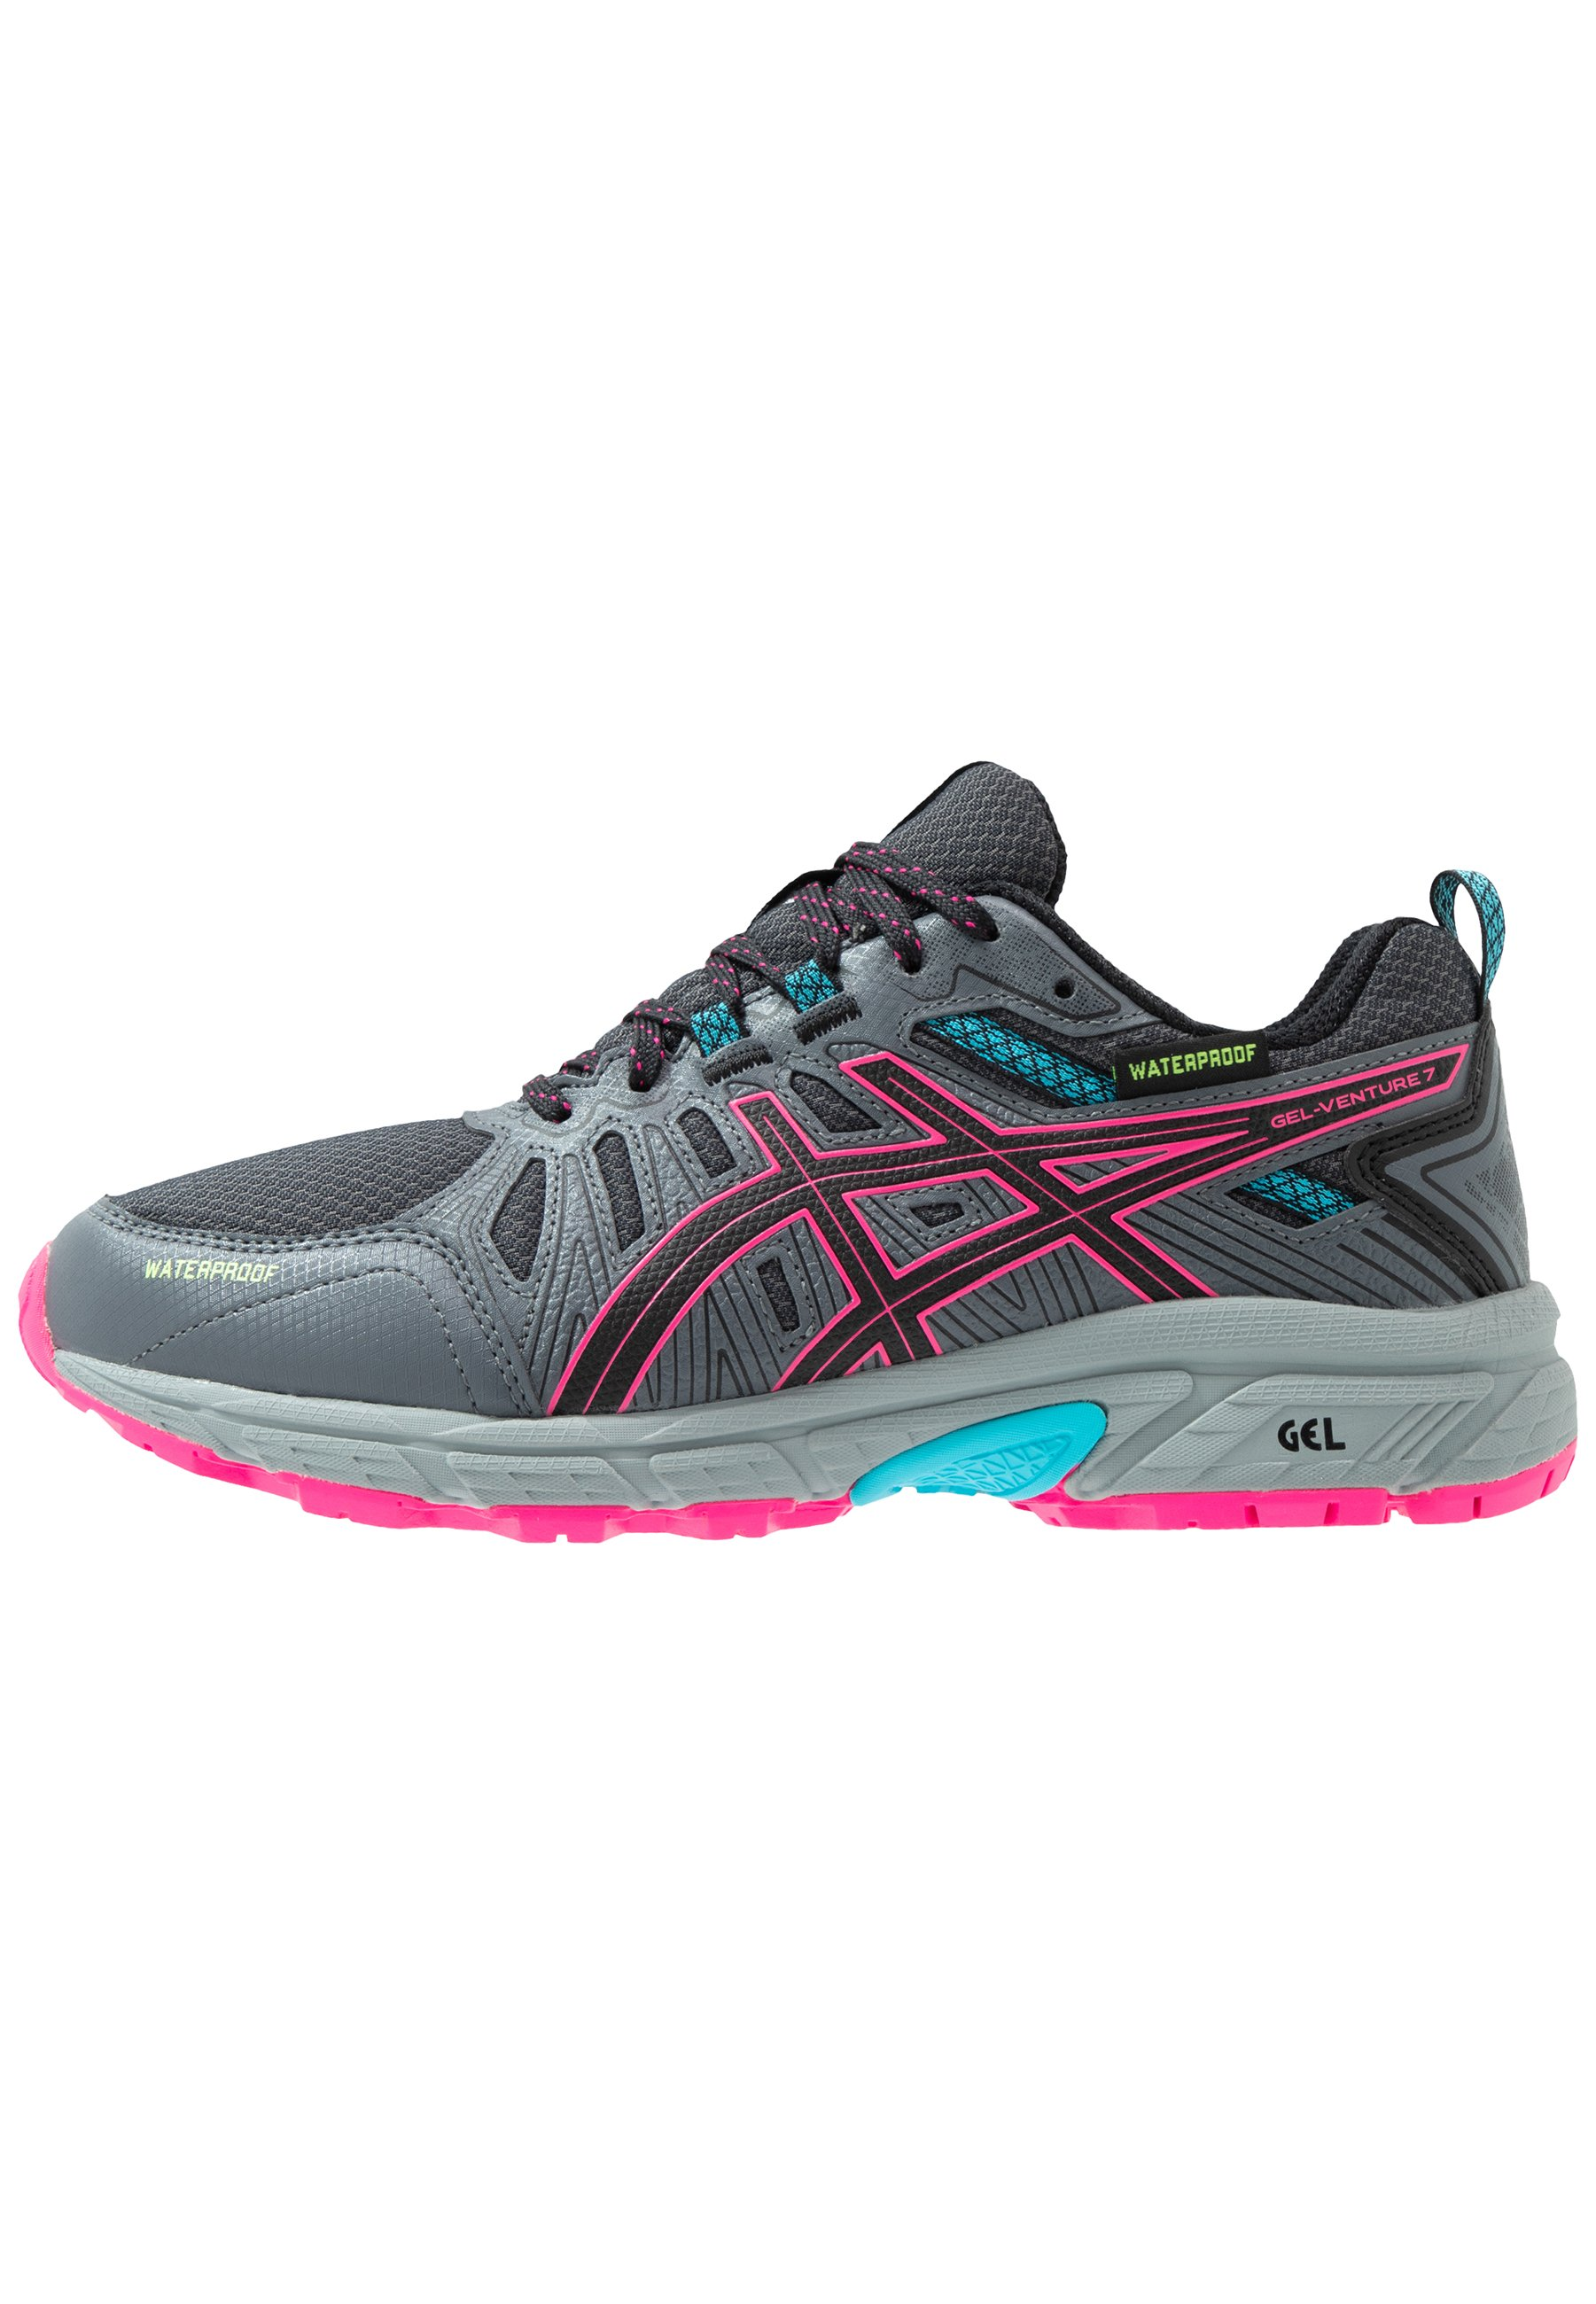 Asics Waterproof Running Clothes & Shoes |